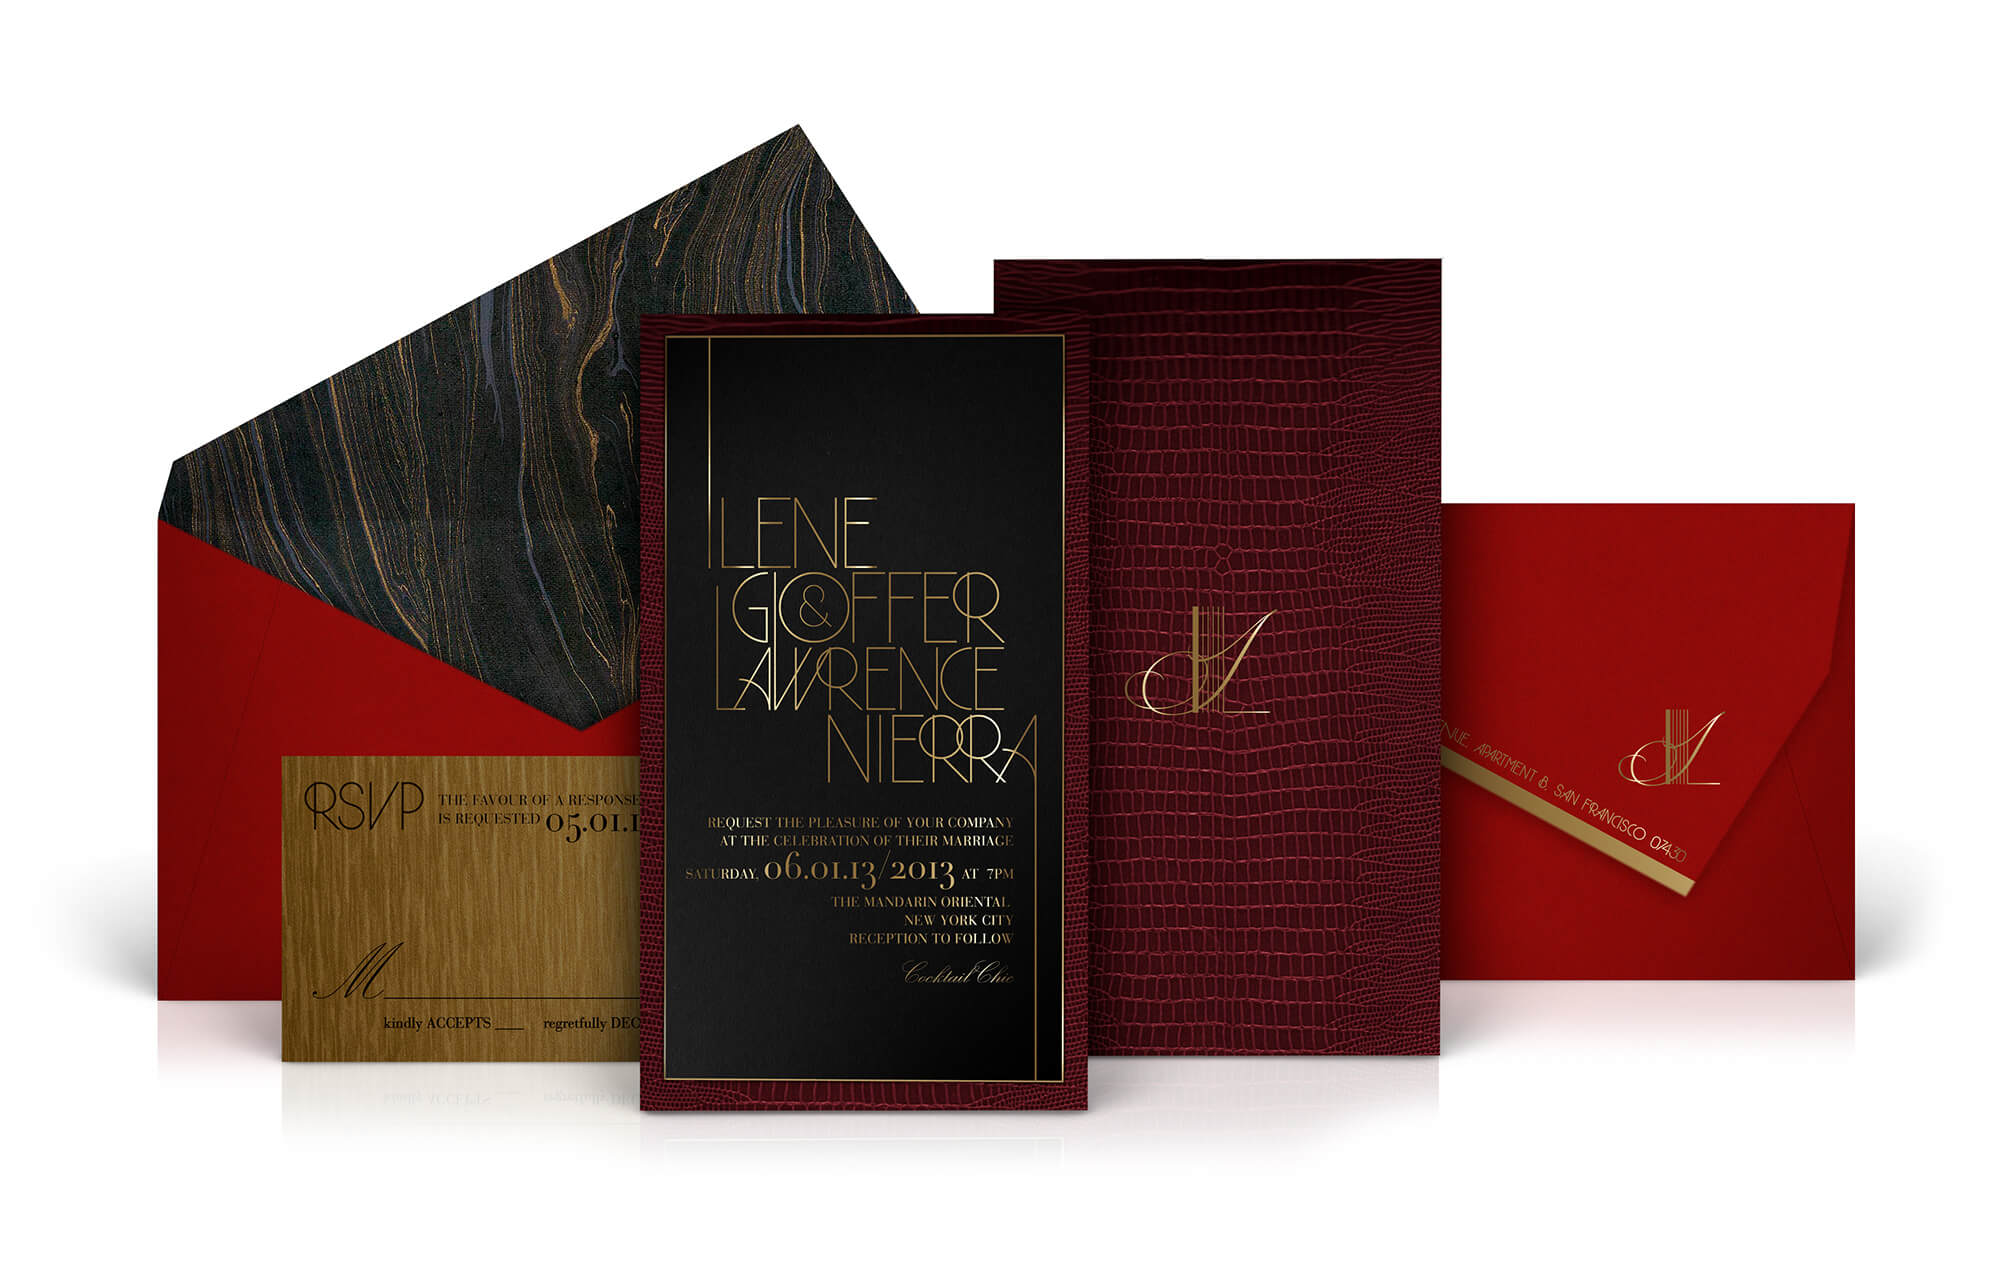 Fashion week wedding invitation in red, black and gold